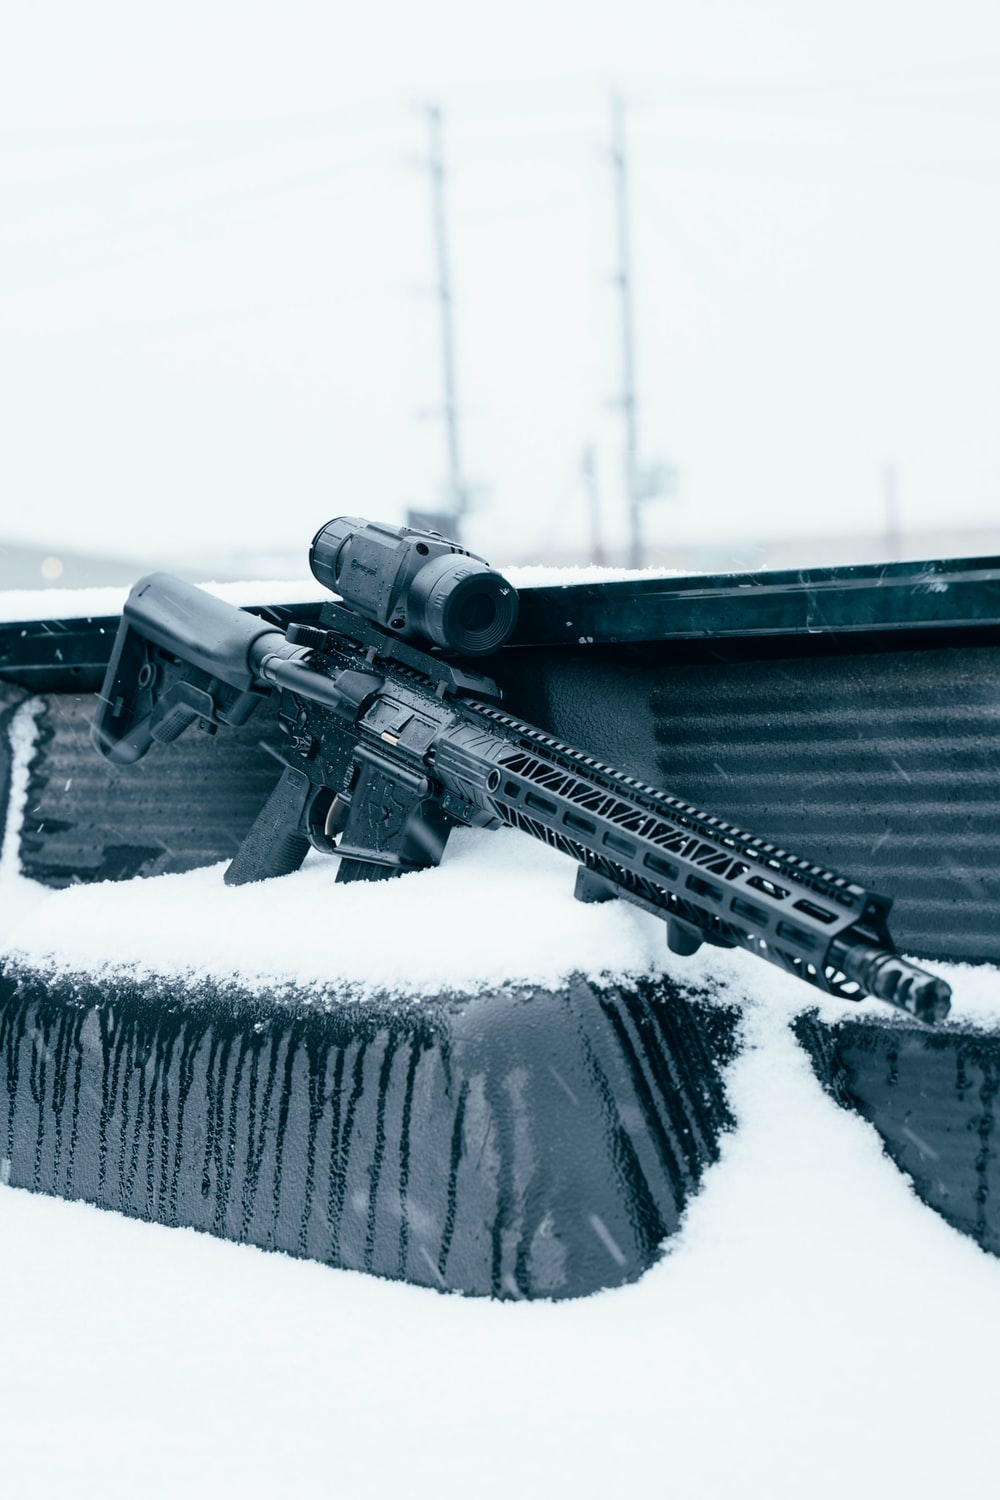 black assault rifle on snow covered ground